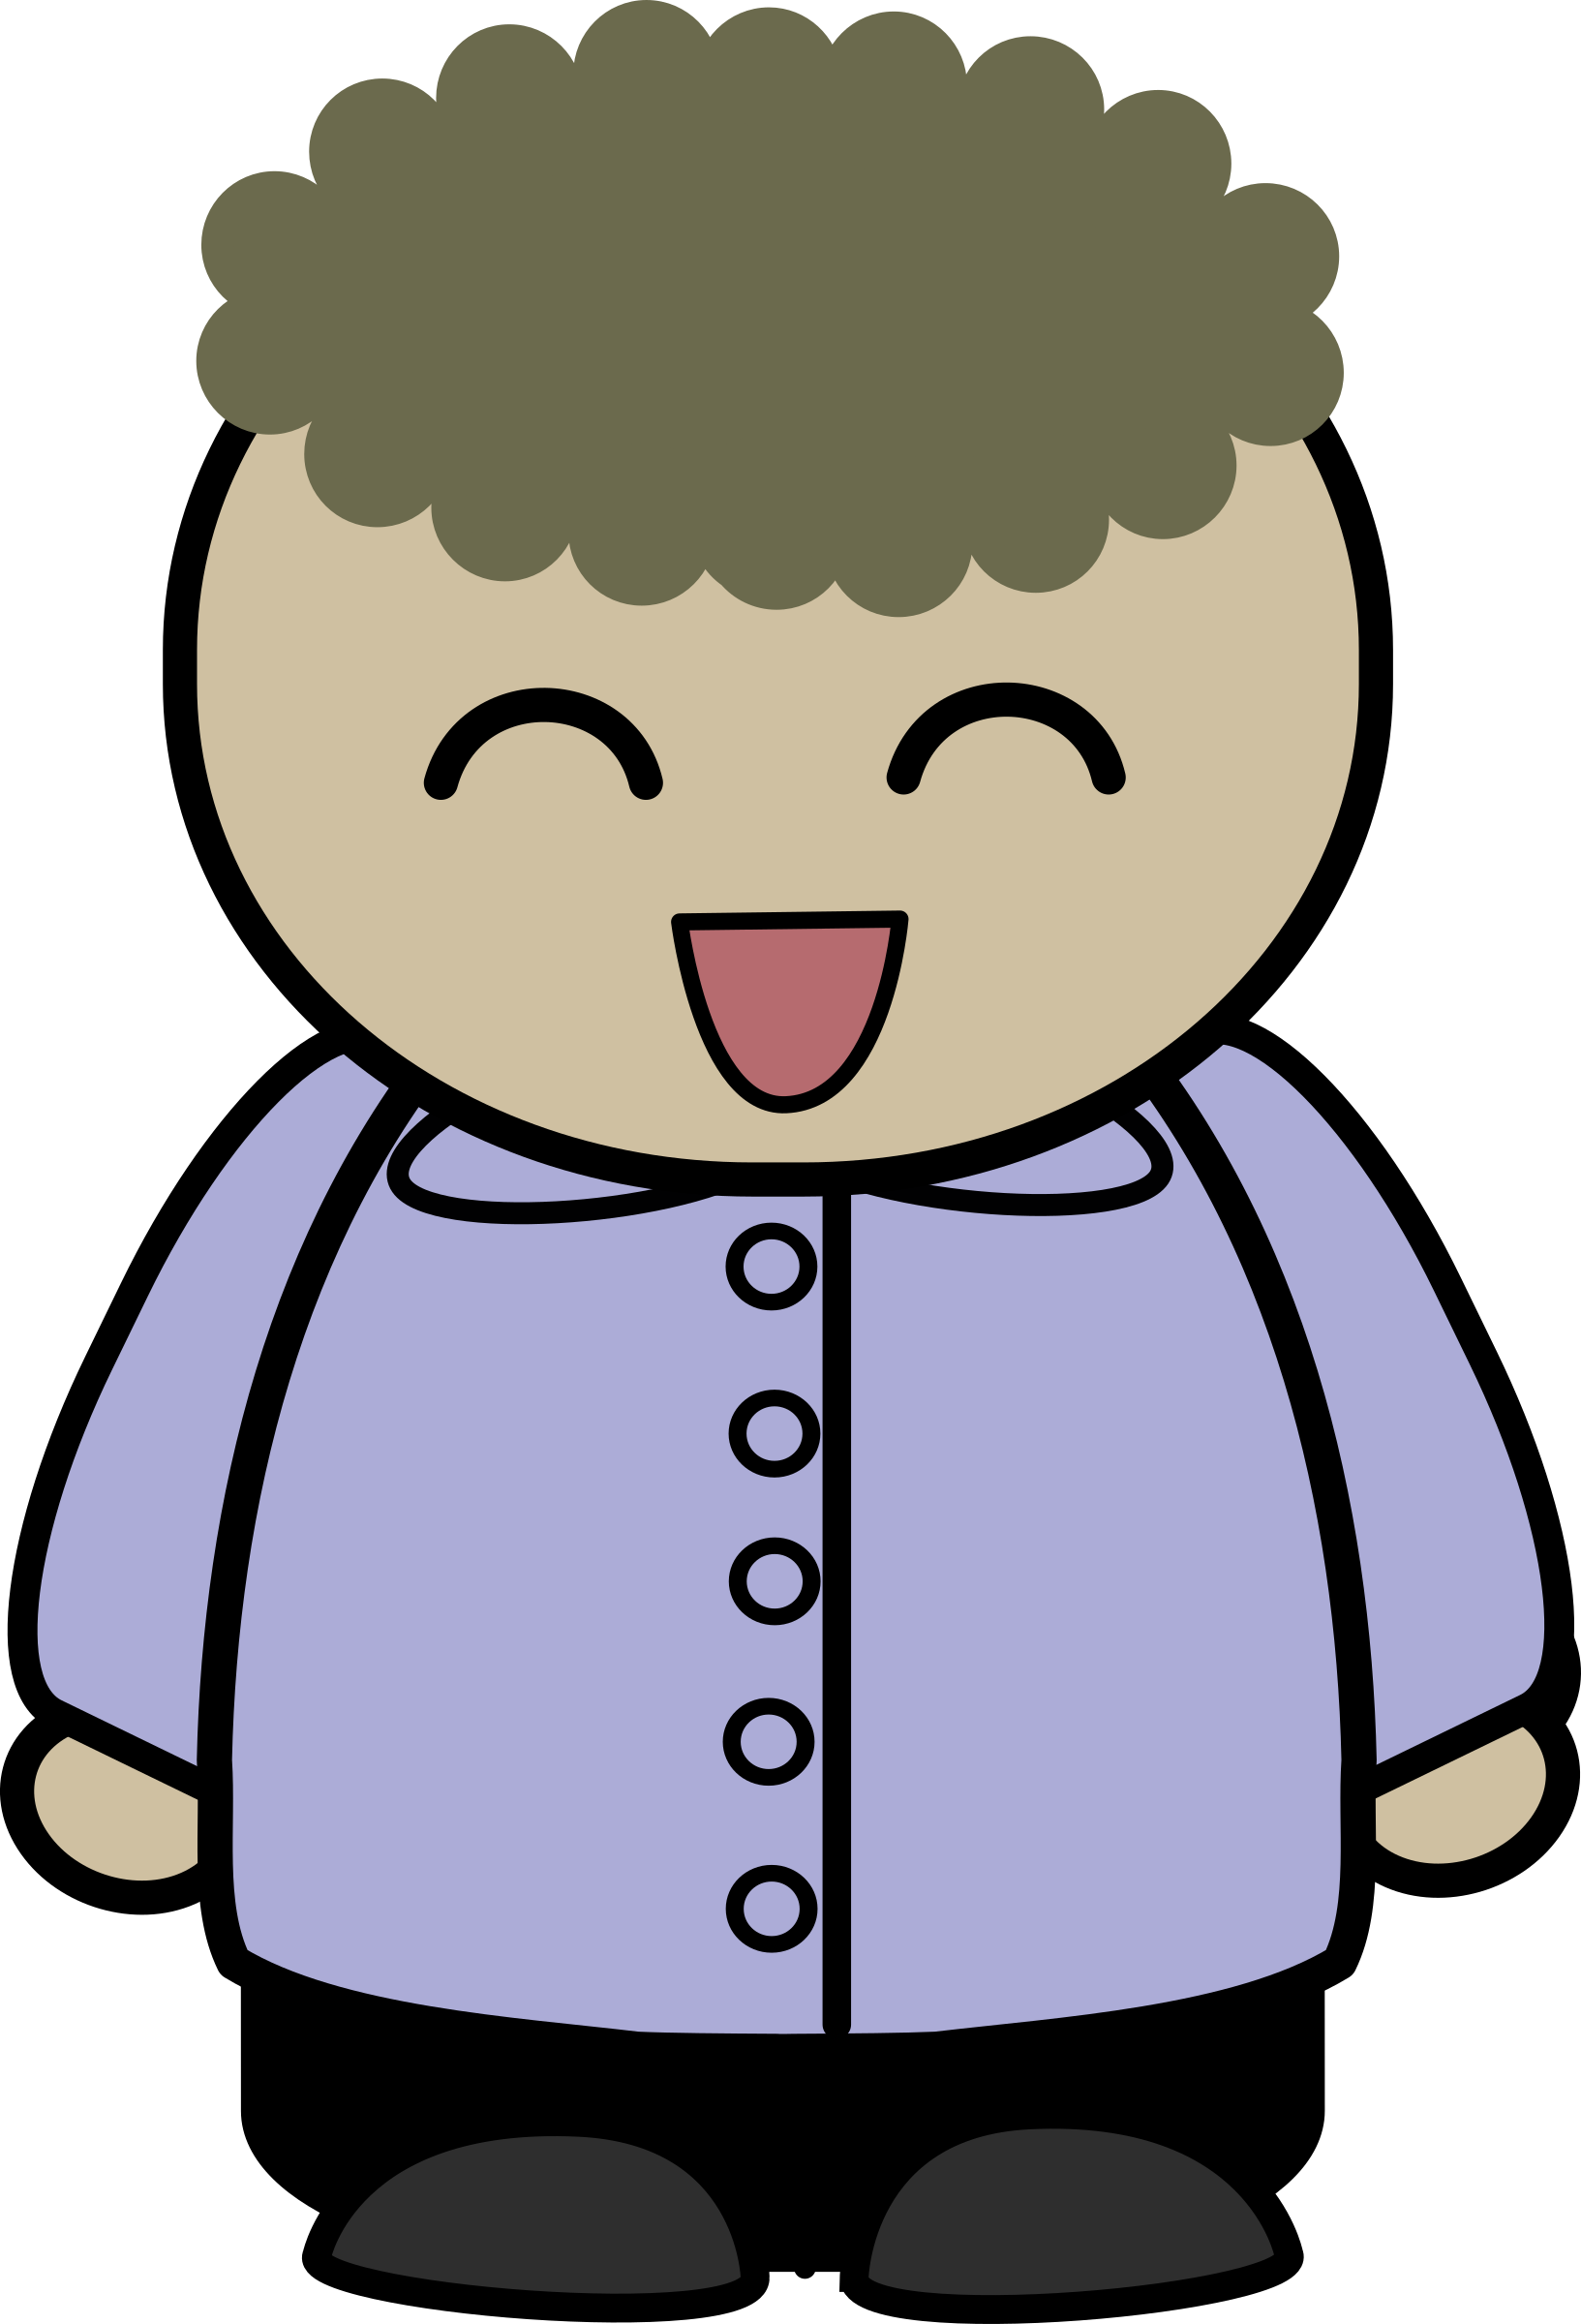 Laughing character clipart graphic Clipart - mix and match character brad laughing front graphic